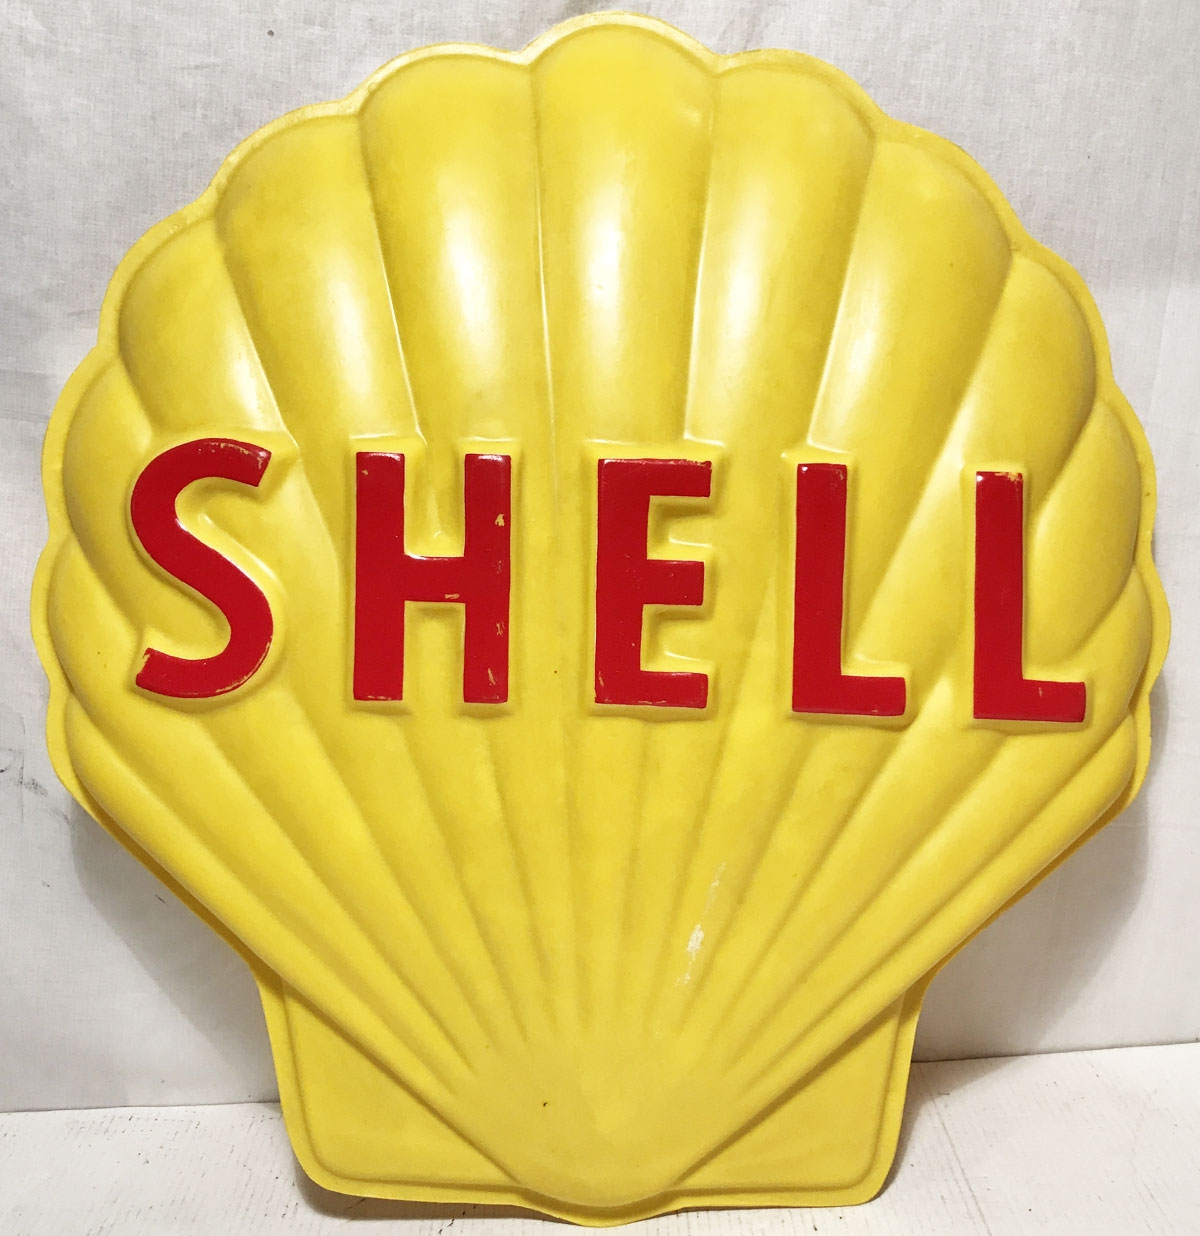 Shell Fiberglass Sign 77 x 72 cm